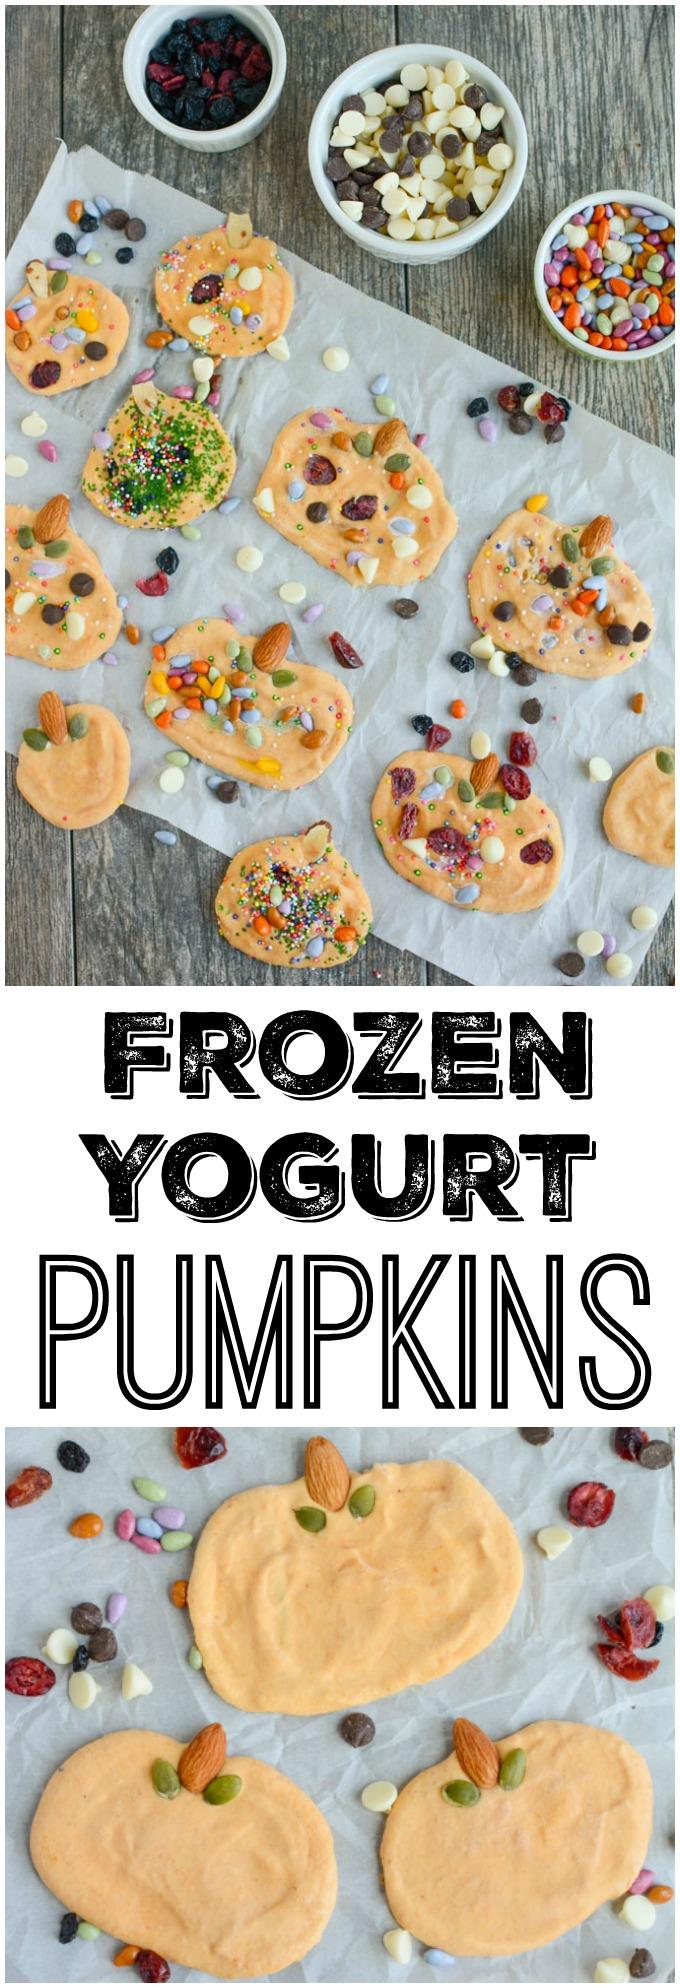 These Frozen Yogurt Pumpkins are a healthy, kid-friendly Halloween treat! They're easy to make and fun to decorate, perfect for a play date or party!